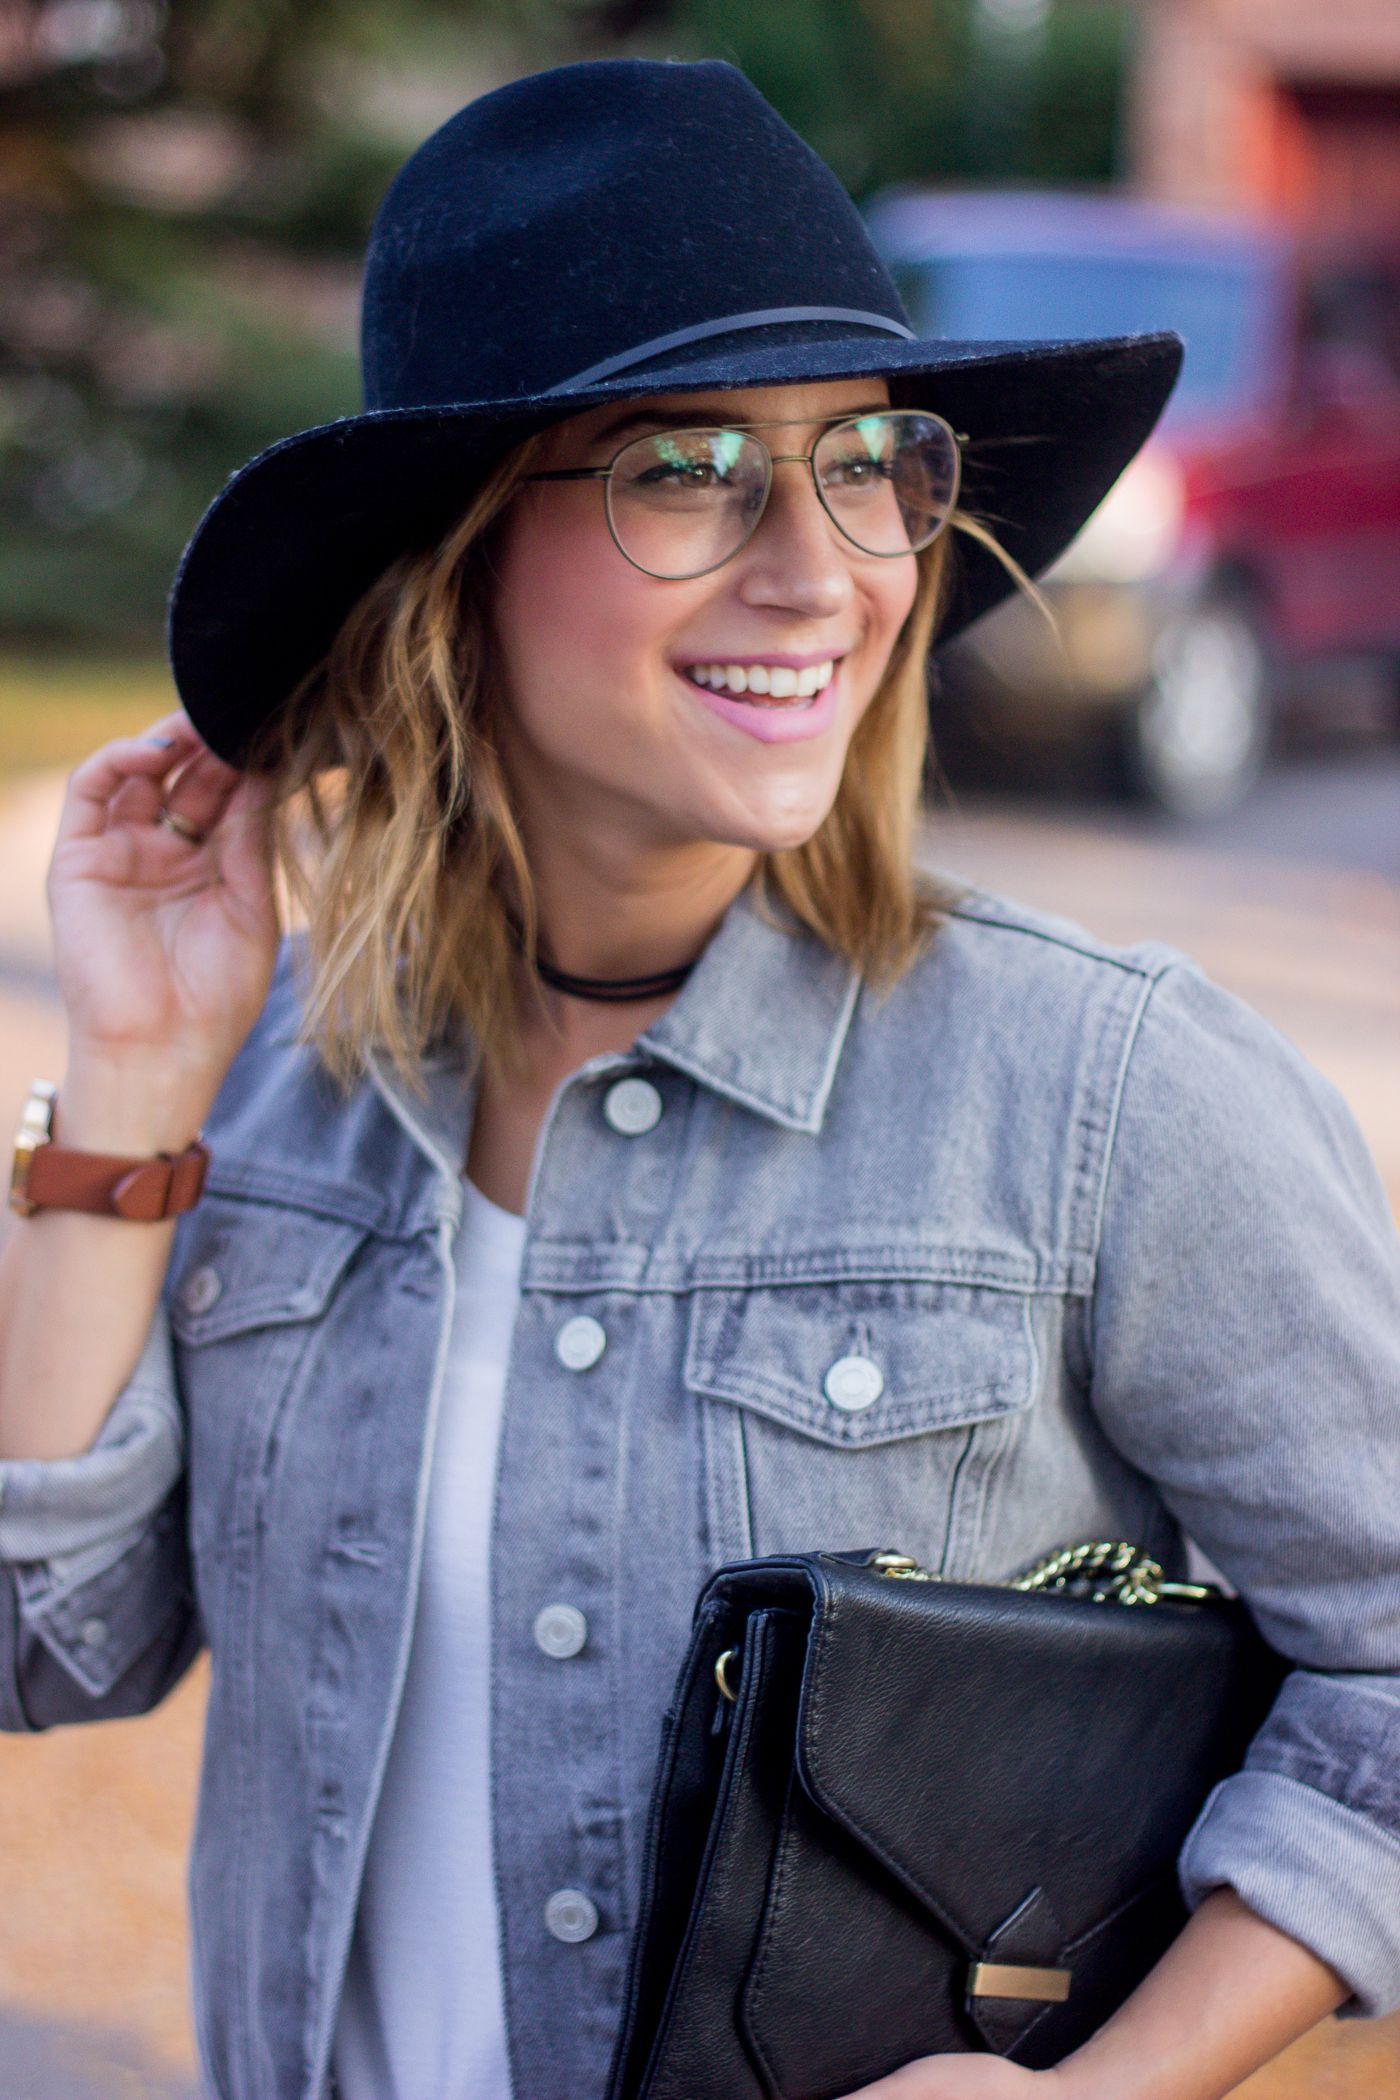 e211c28446b Canadian fashion blogger Jackie from Something About That is wearing the  Joseph Marc Observation Aviator frames from Clearly in size small and a grey  jean ...